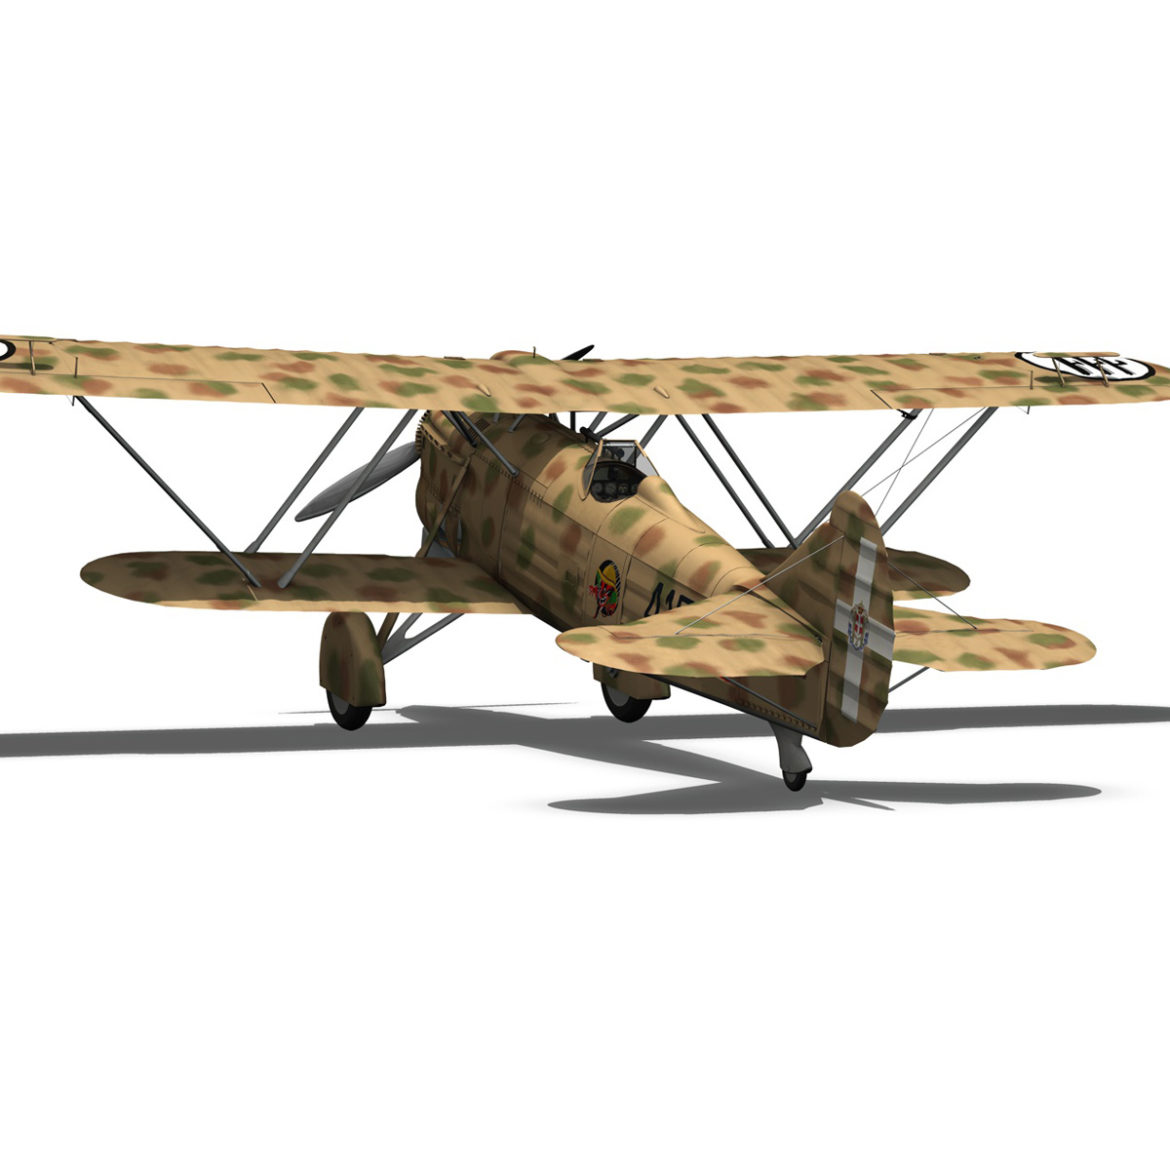 fiat cr.32 – italy airforce – 410 squadriglia 3d model fbx c4d lwo obj 307552